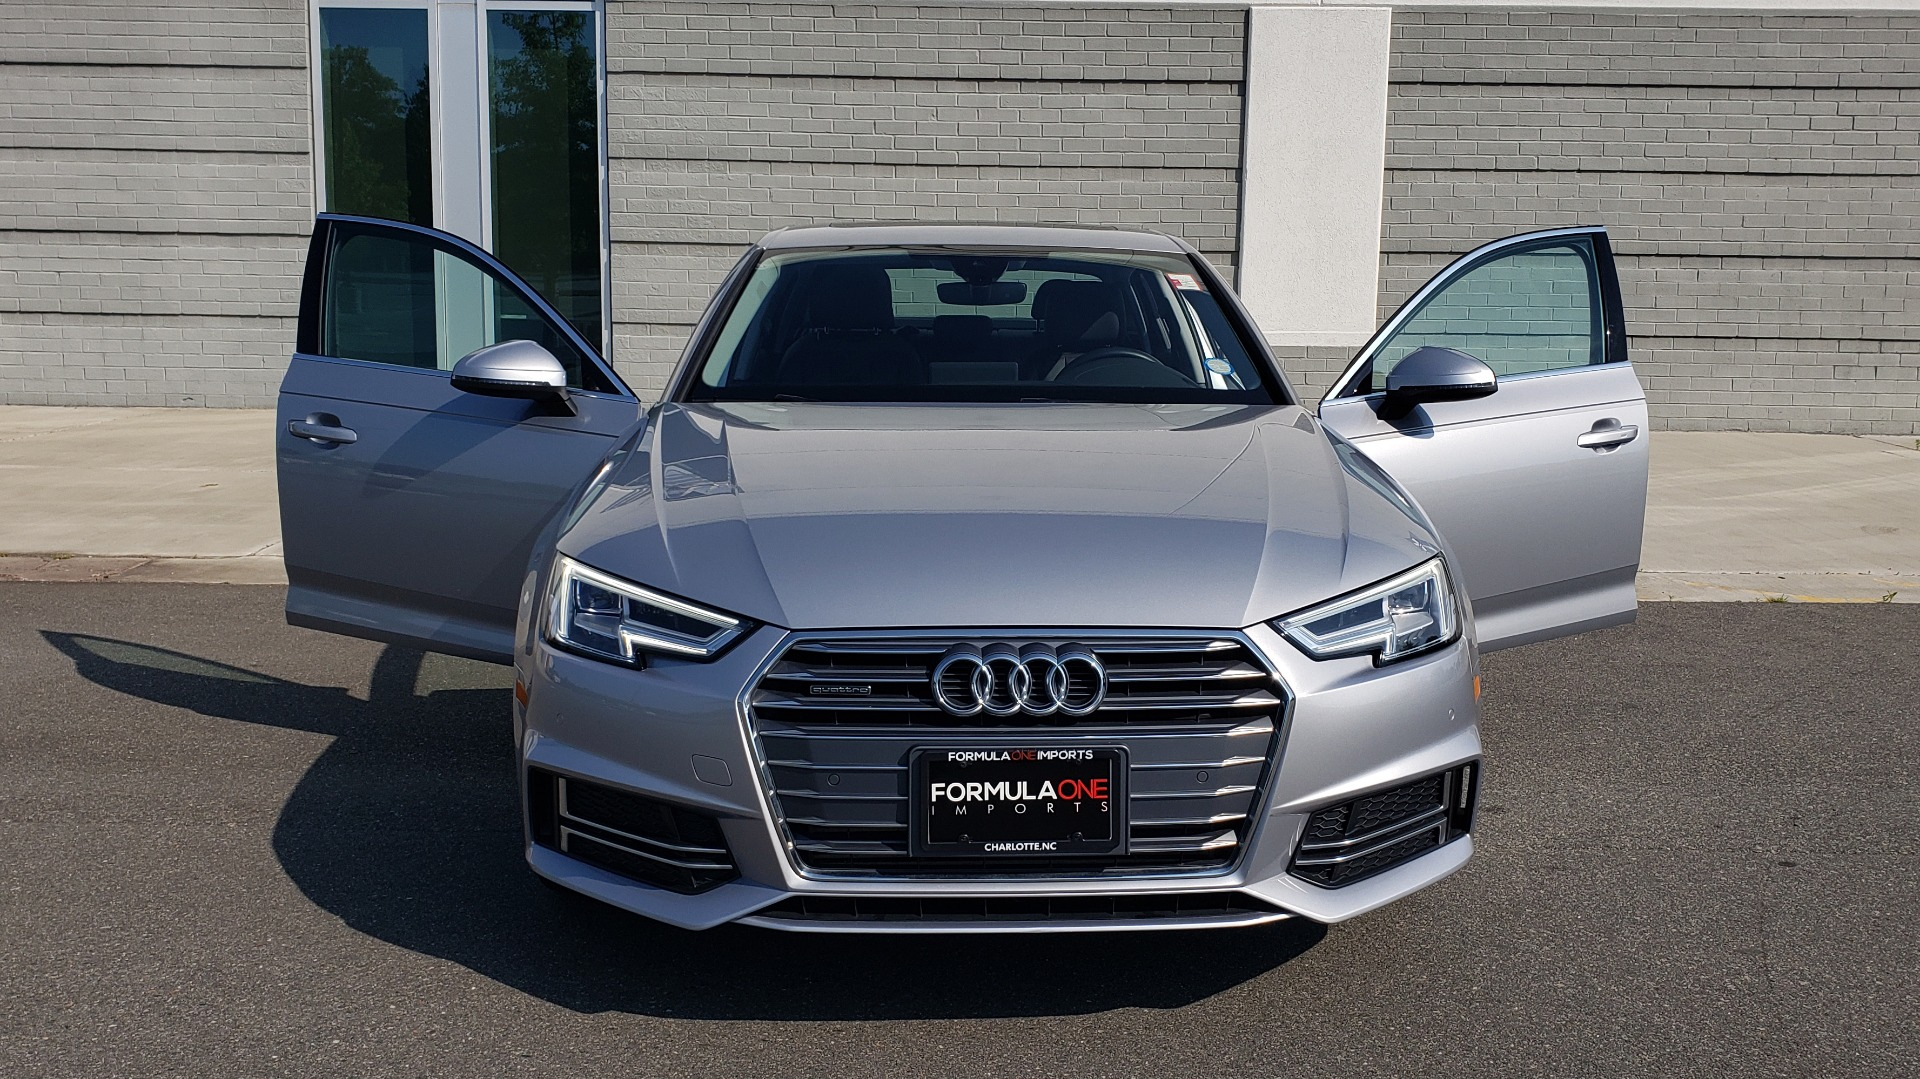 Used 2018 Audi A4 PREMIUM PLUS 2.0T / NAV / SUNROOF / B&O SND / CLD WTHR / REARVIEW for sale $29,395 at Formula Imports in Charlotte NC 28227 22